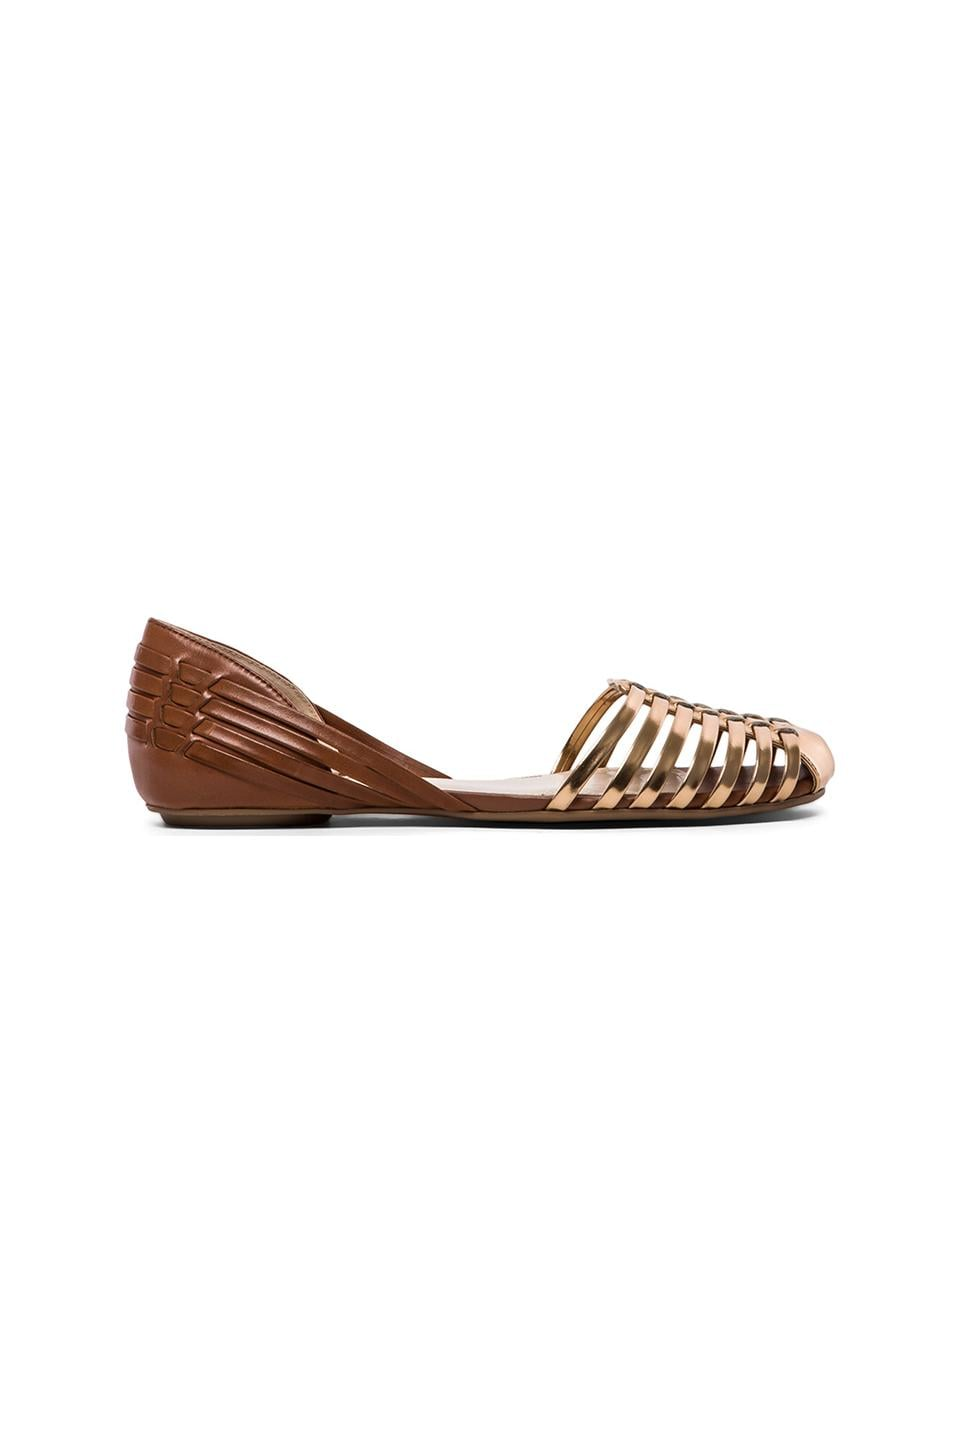 Vince Camuto Caprio Flat in Copper & Saddle